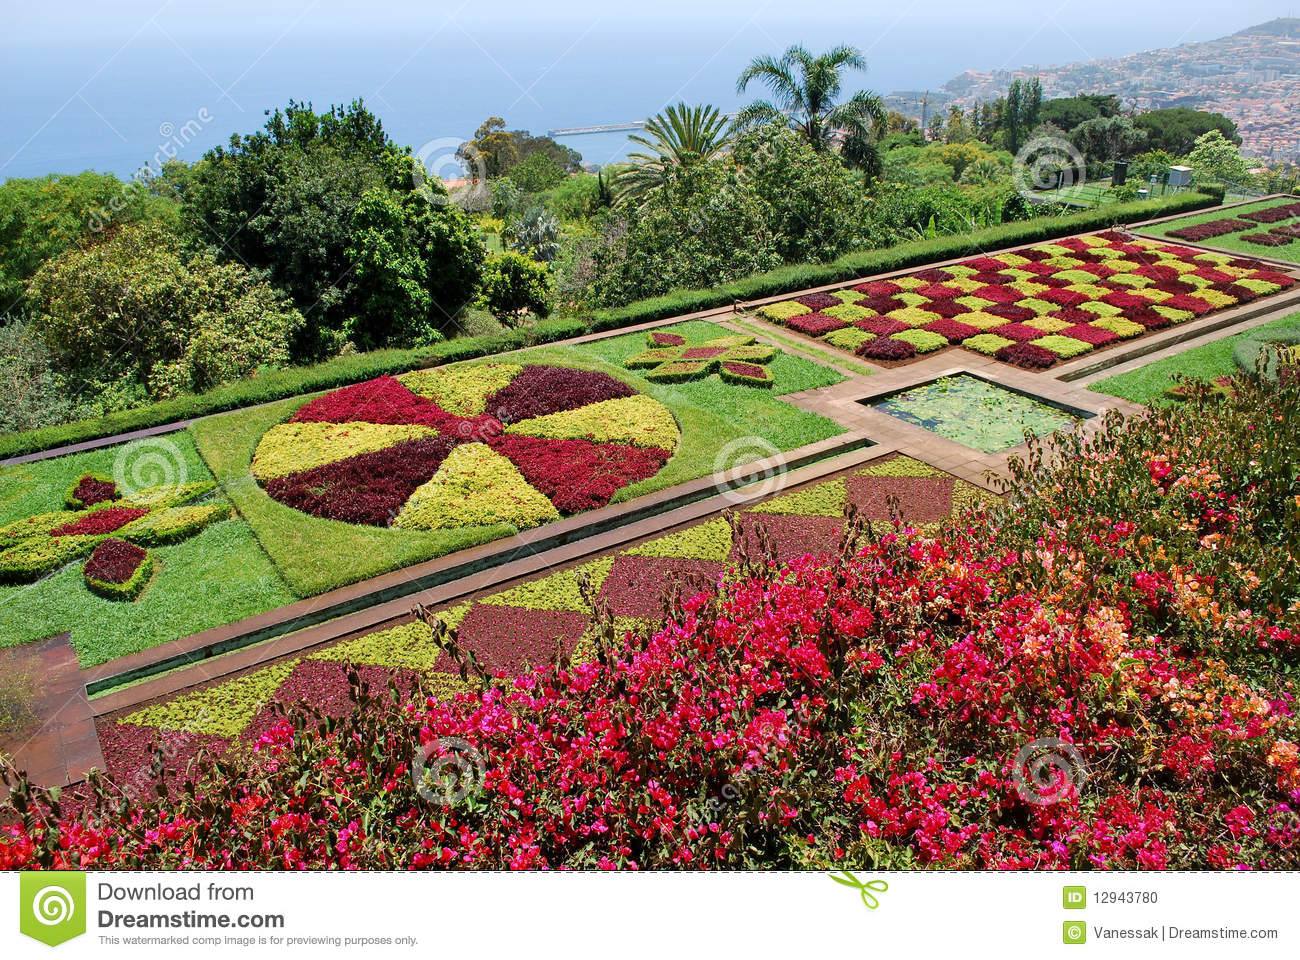 Der Botanische Garten Der Botanische Garten Von Funchal In Madeira Stockfoto